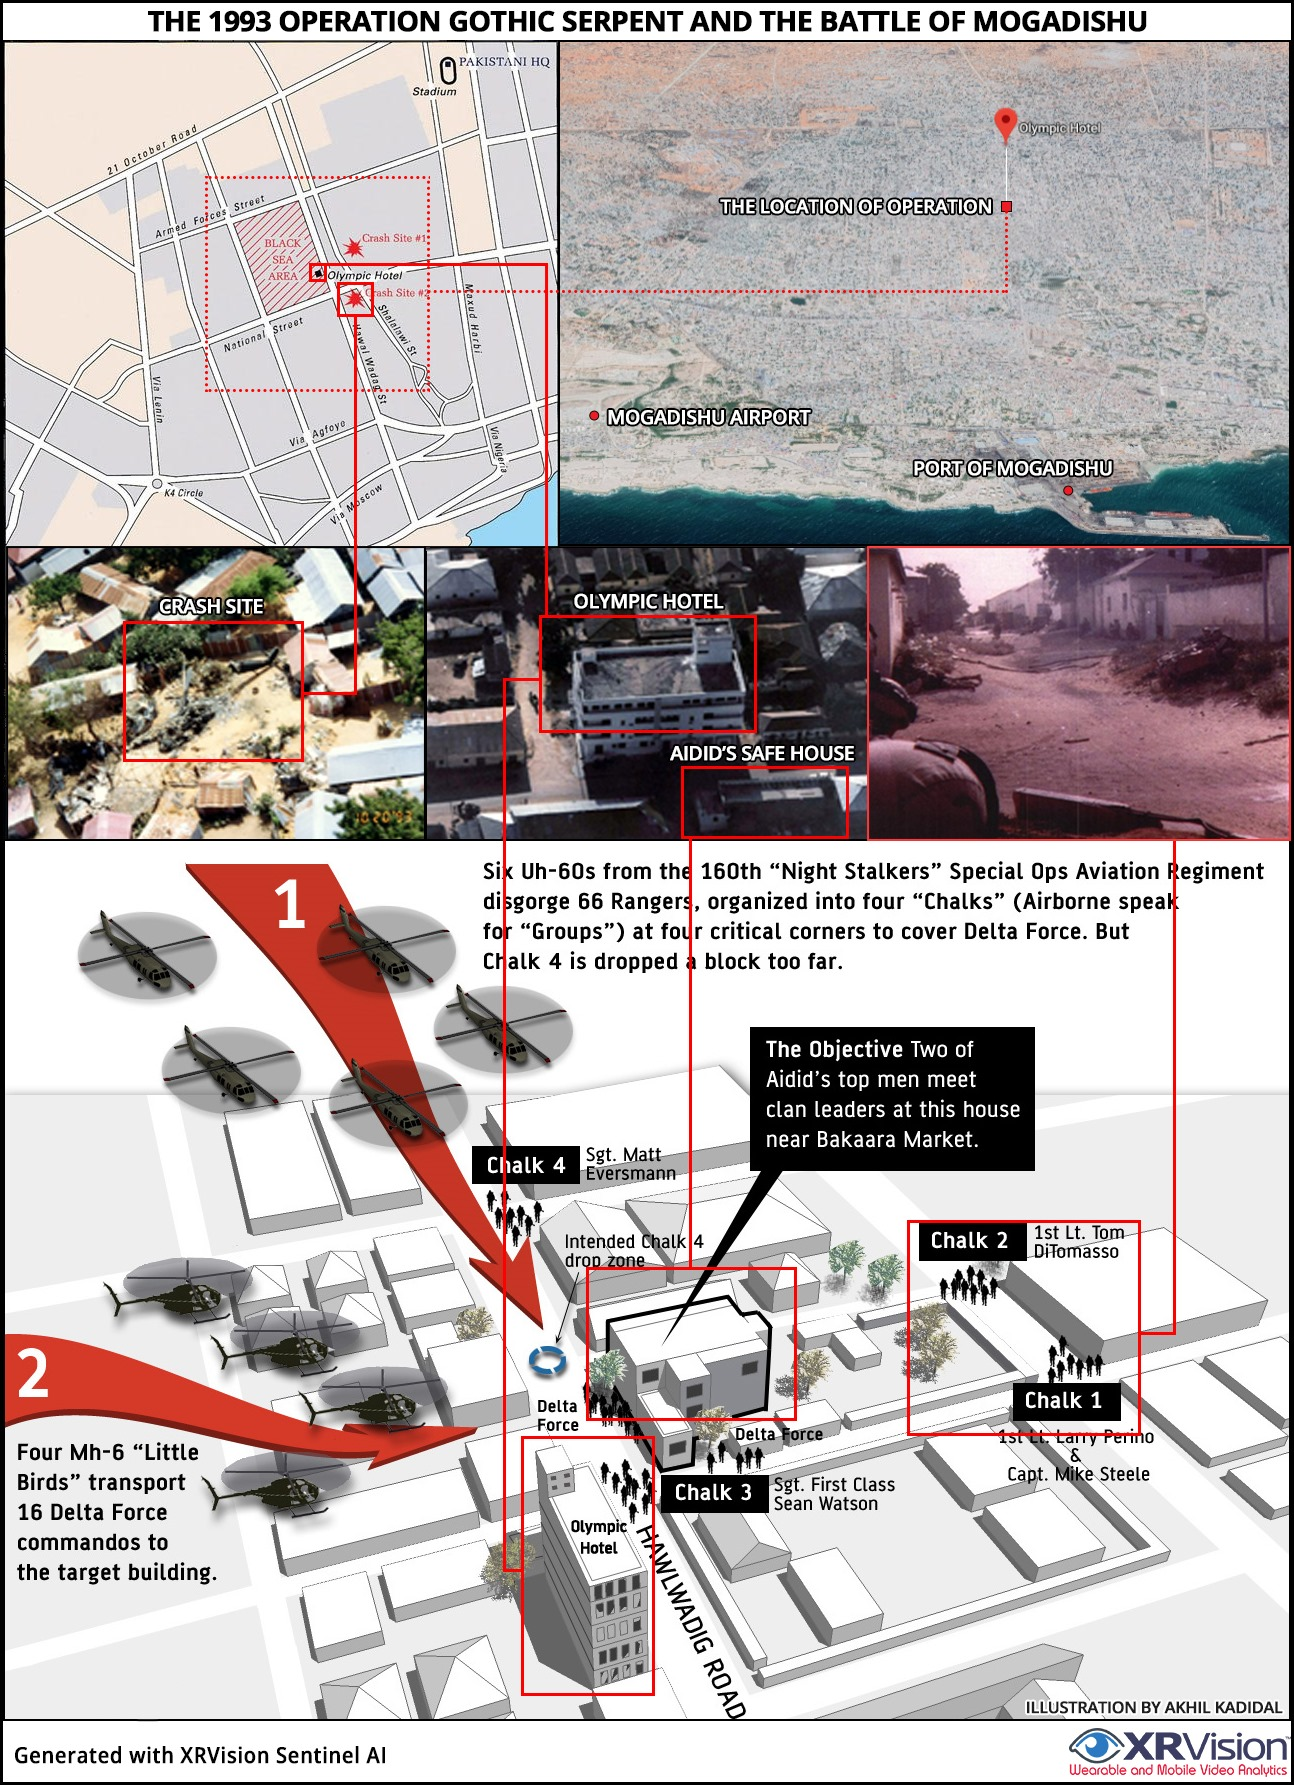 Operation Gothic Serpent and the Battle of Mogadishu